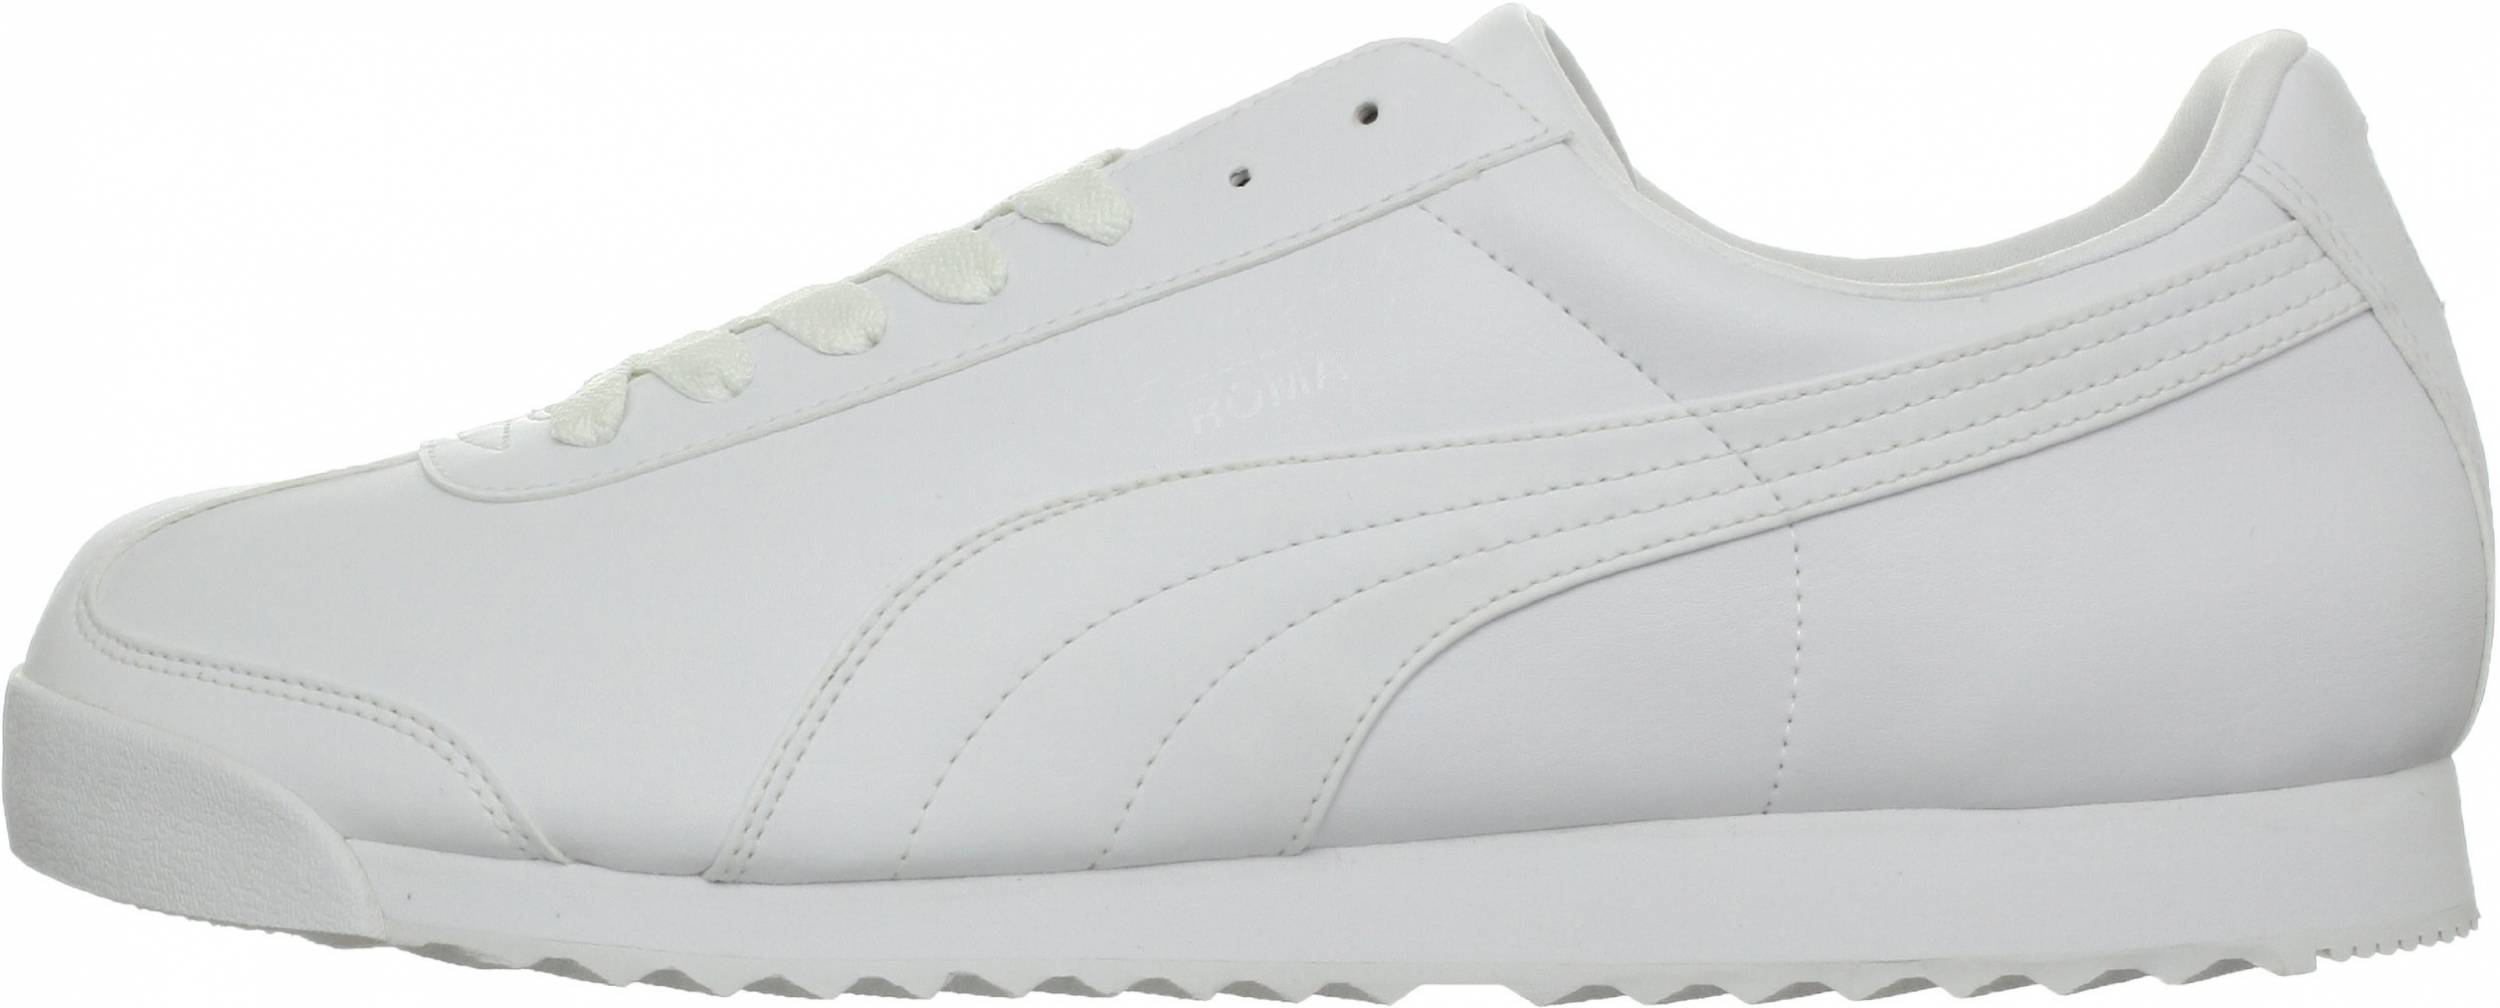 Only $22 + Review of Puma Roma | RunRepeat